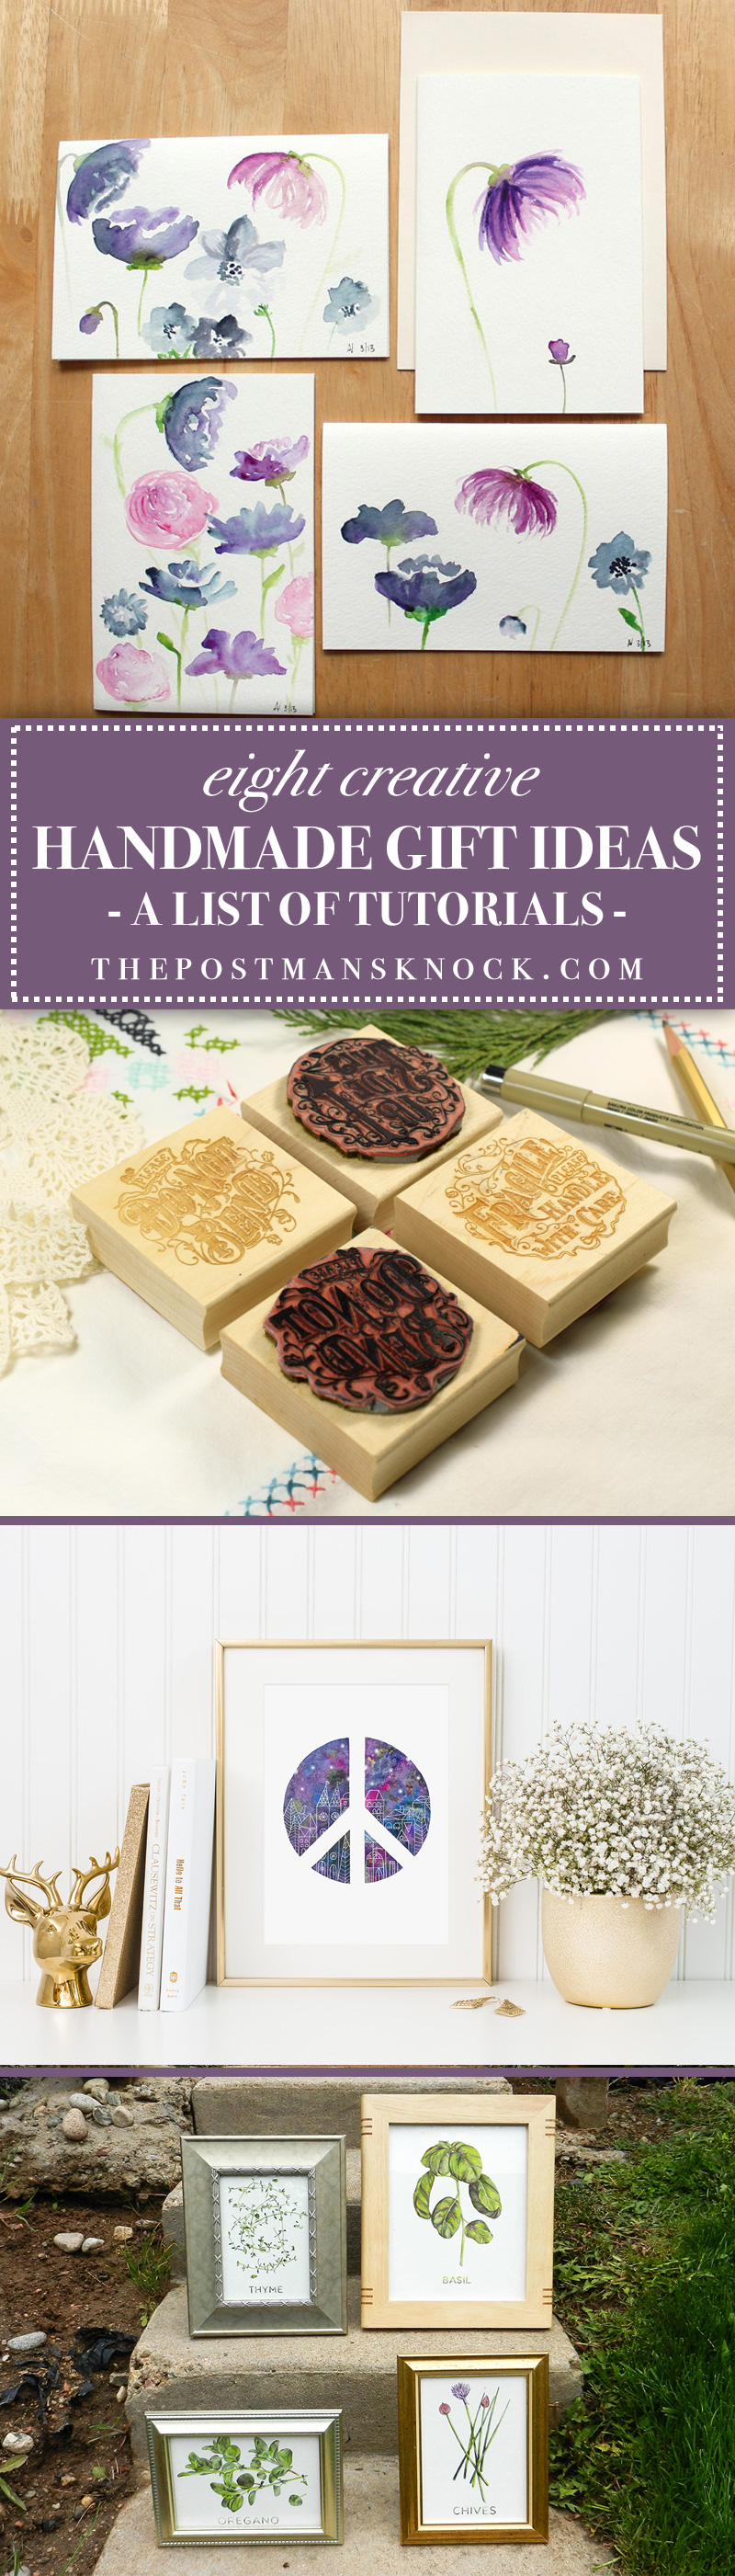 8 Creative Handmade Gift Ideas | The Postman's Knock